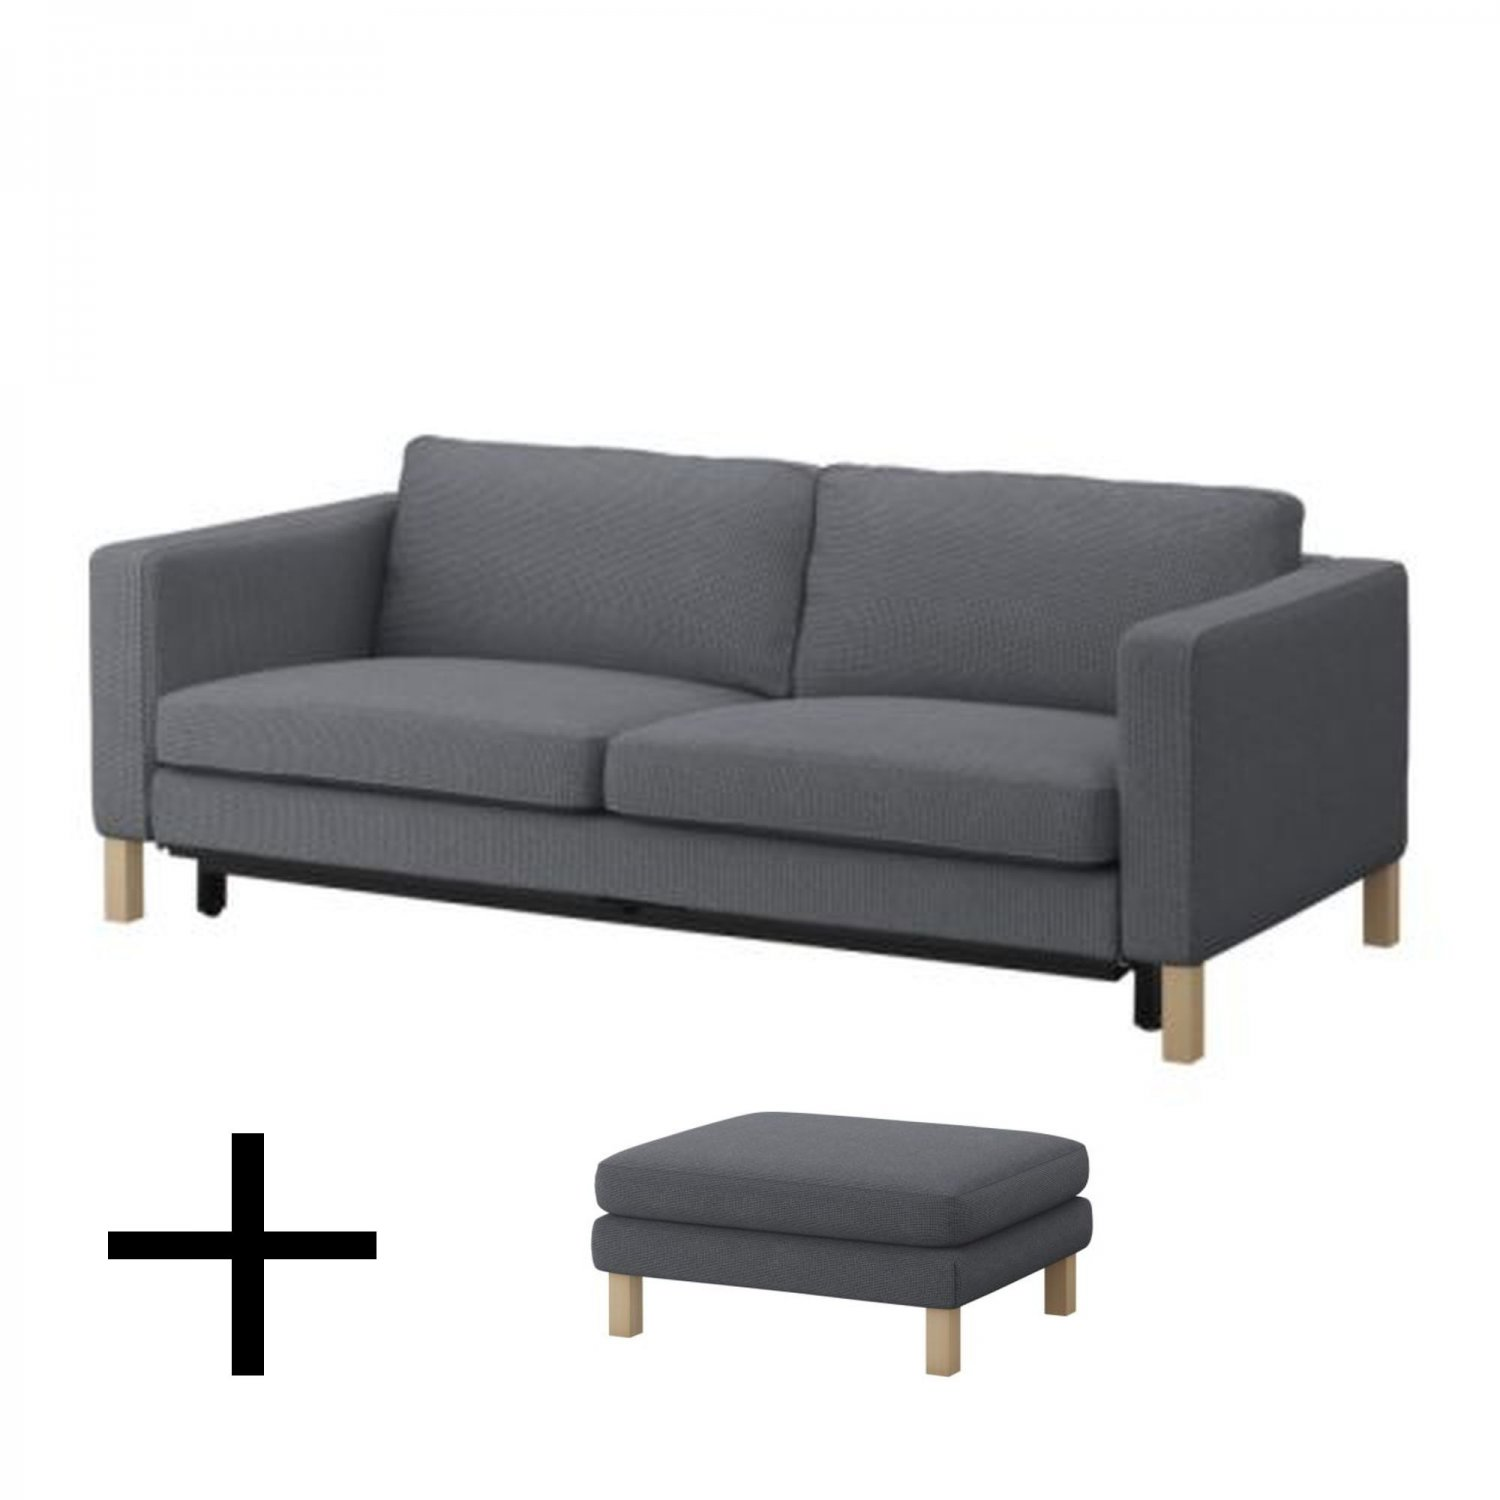 Ikea Sofa In Uk Ikea Karlstad Sofa Bed And Footstool Slipcovers Sofabed